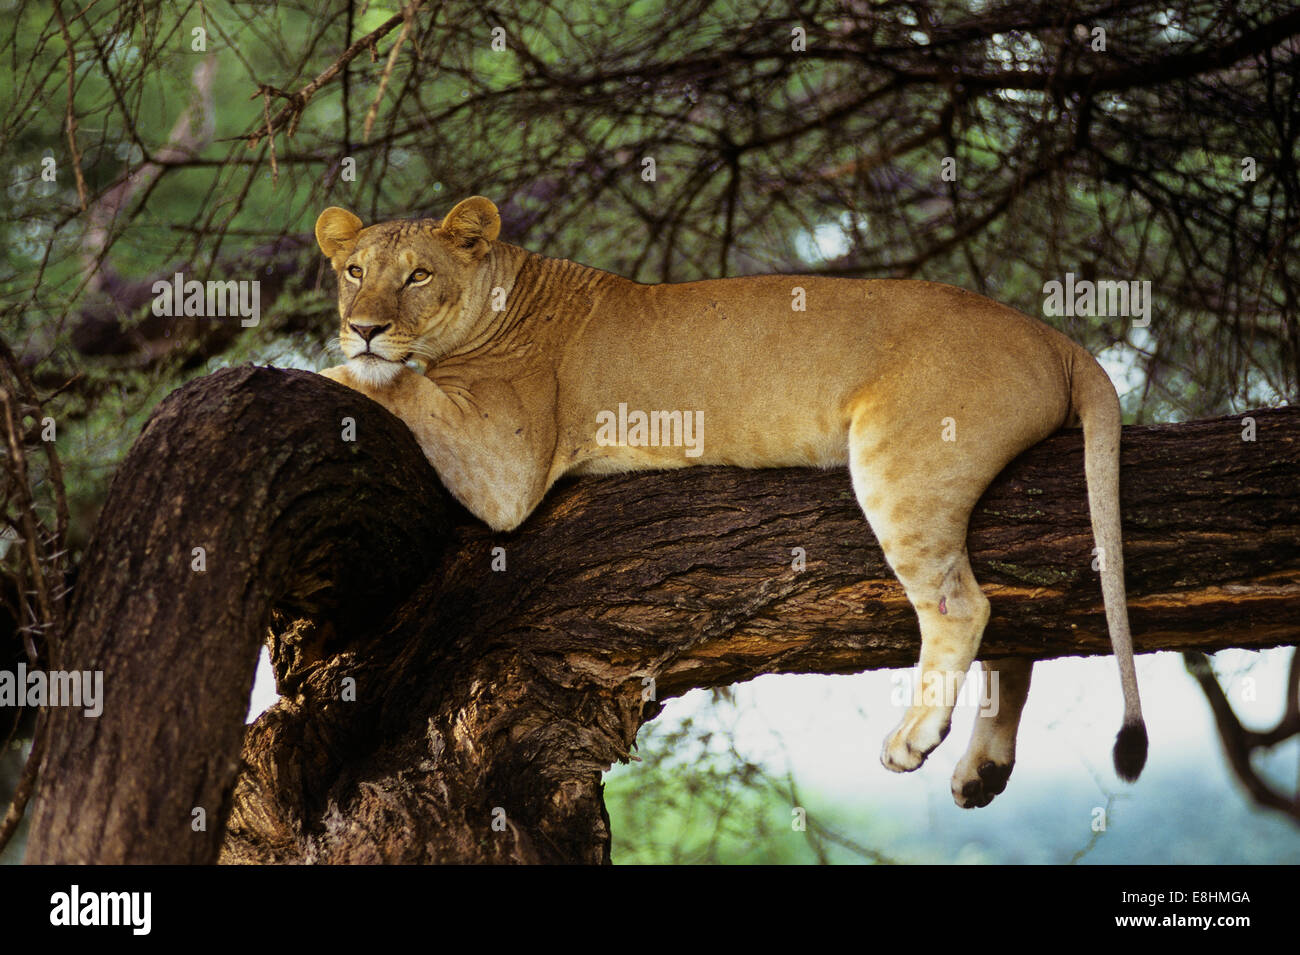 African lion resting in big tree - Stock Image